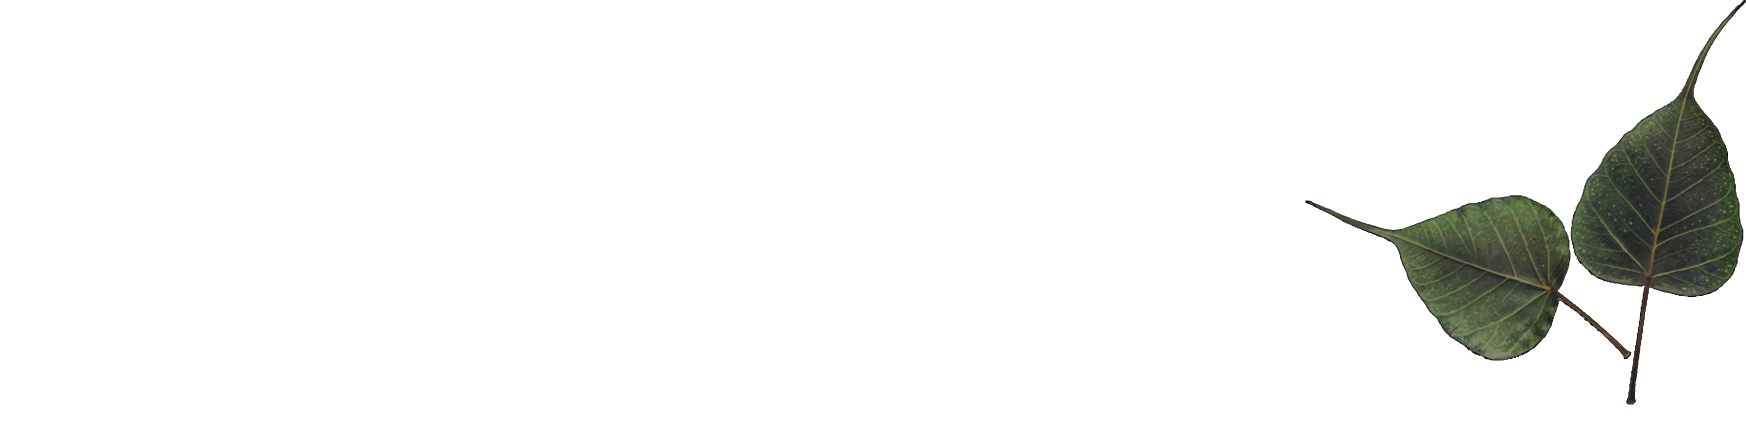 CMTC Architect Inc.